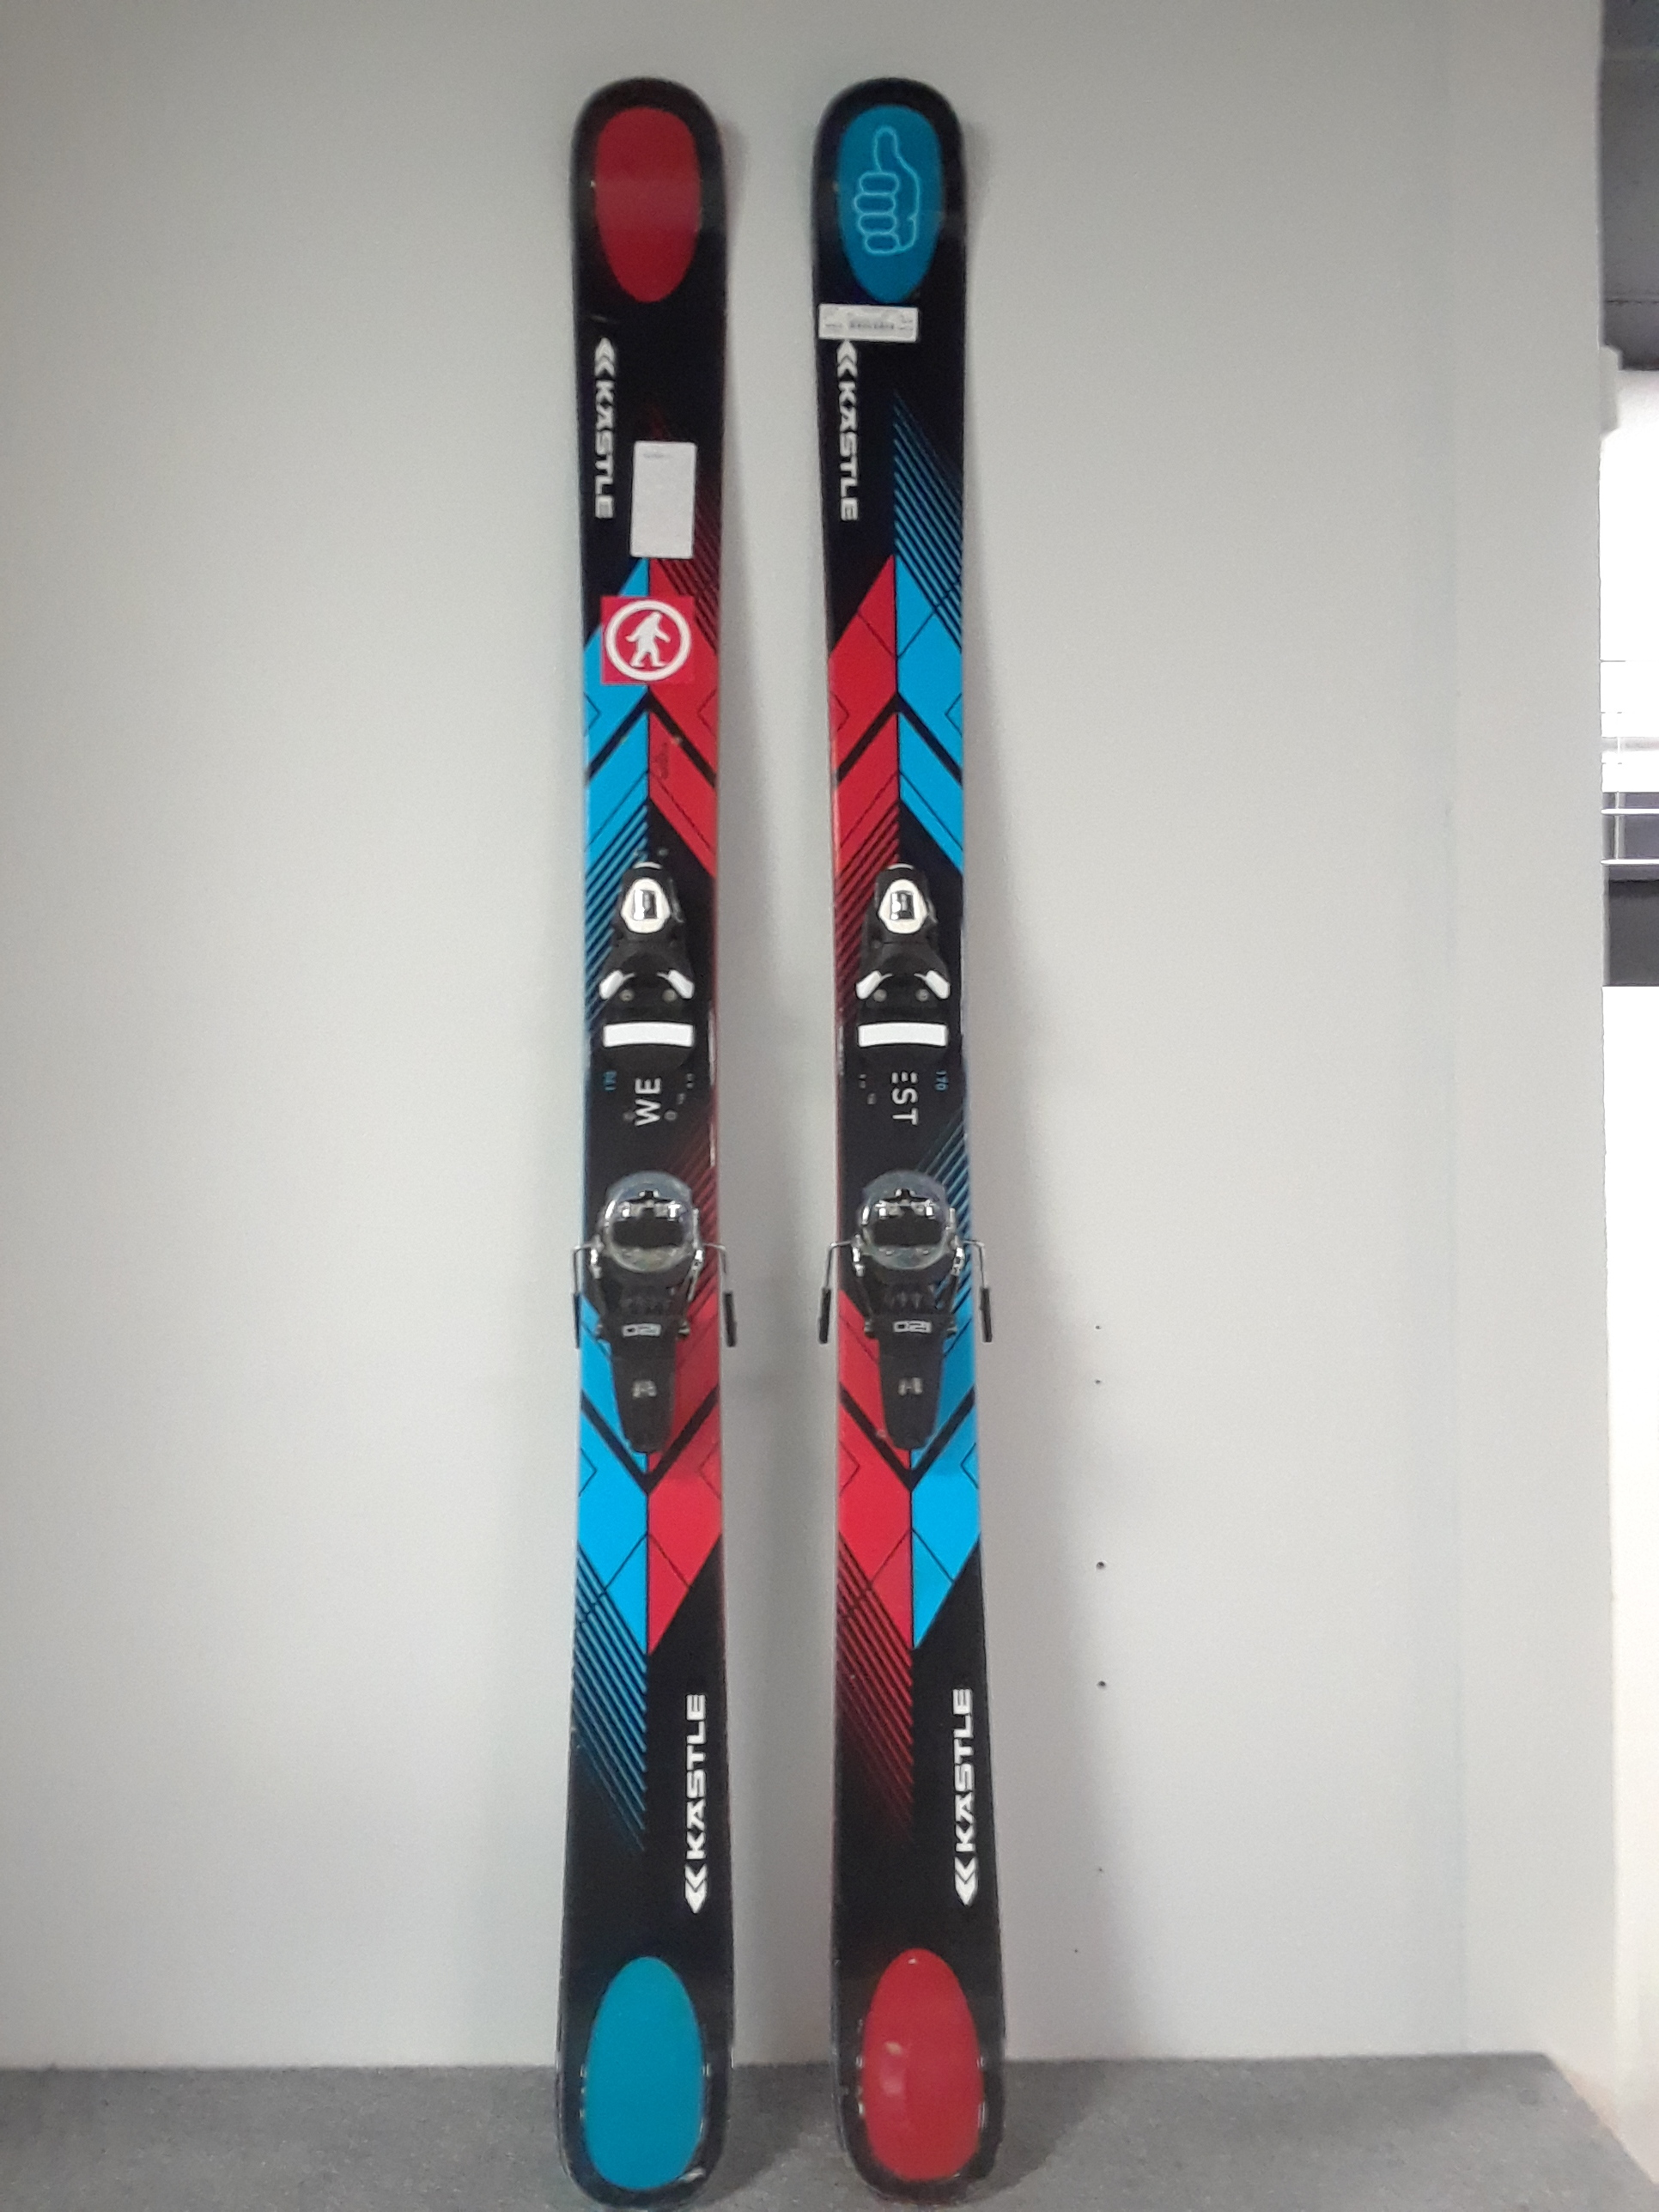 What we have here is the 2013 170 Kastle West 110 with the Rossi FKS 120 bindings. The planks are in great condition and we have this $1,000 value (including the bindings) priced at $499.